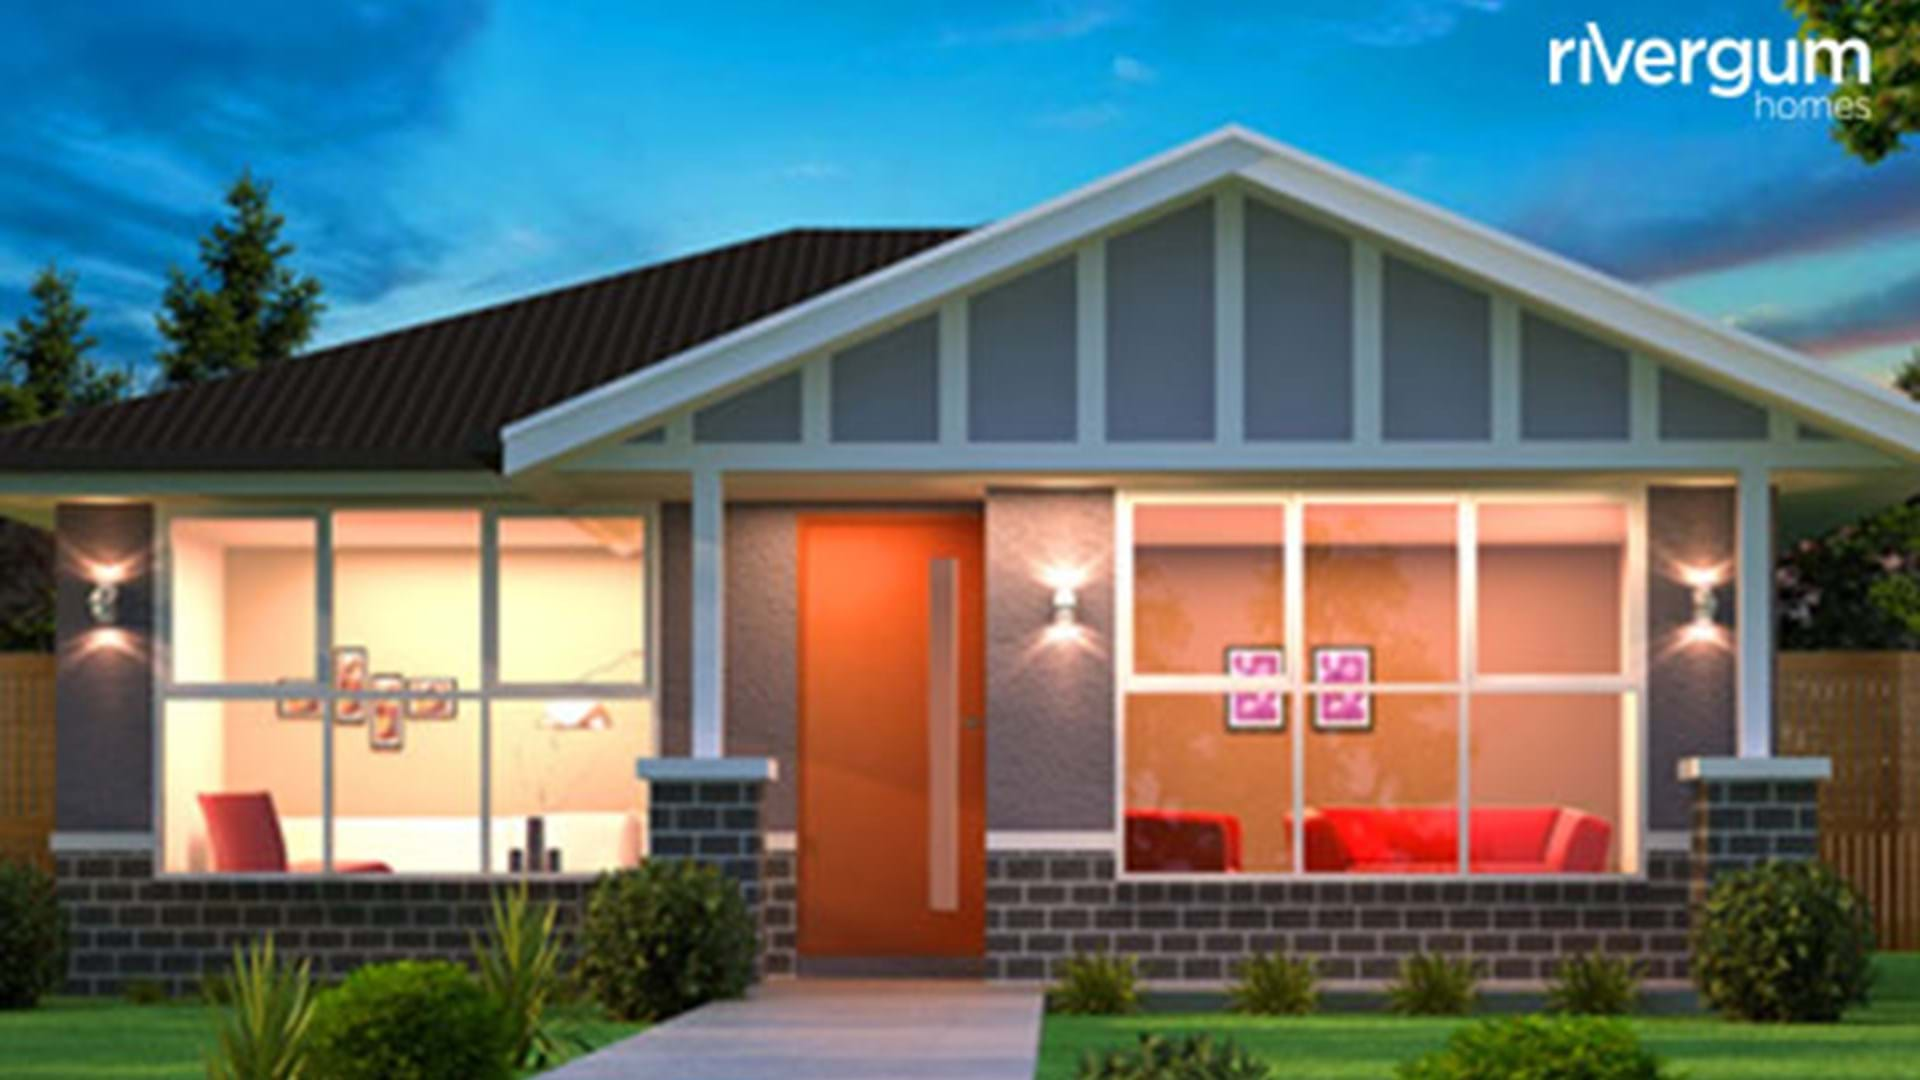 Alfresco Home Design By Rivergum Homes